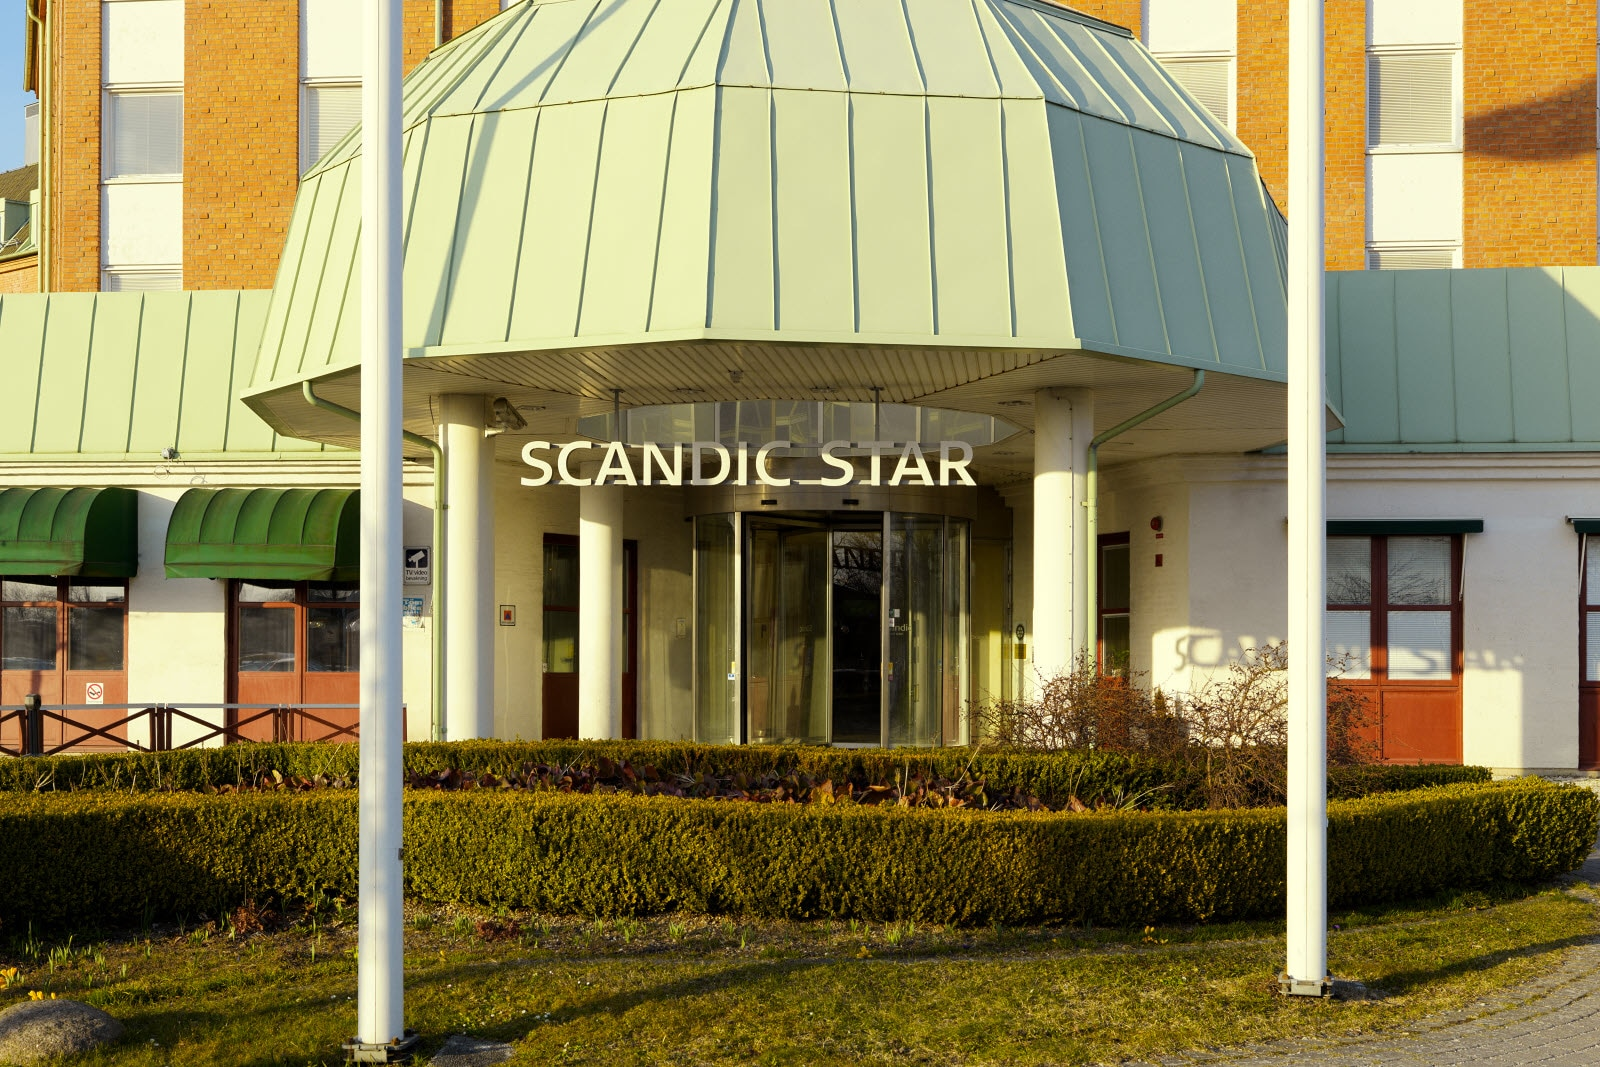 Scandic Star, entrance